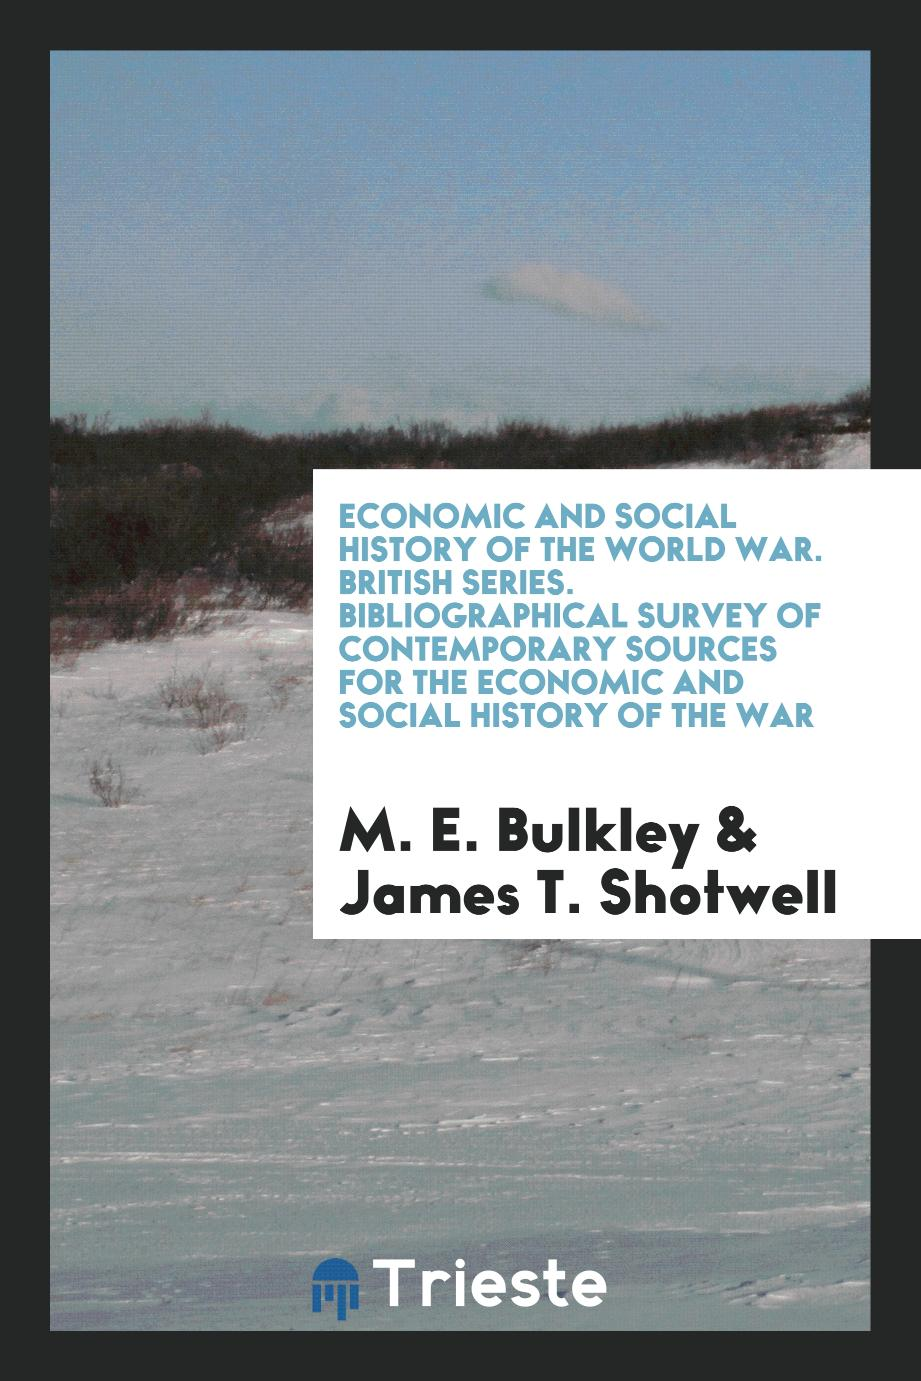 Economic and Social History of the World War. British Series. Bibliographical Survey of Contemporary Sources for the Economic and Social History of the War